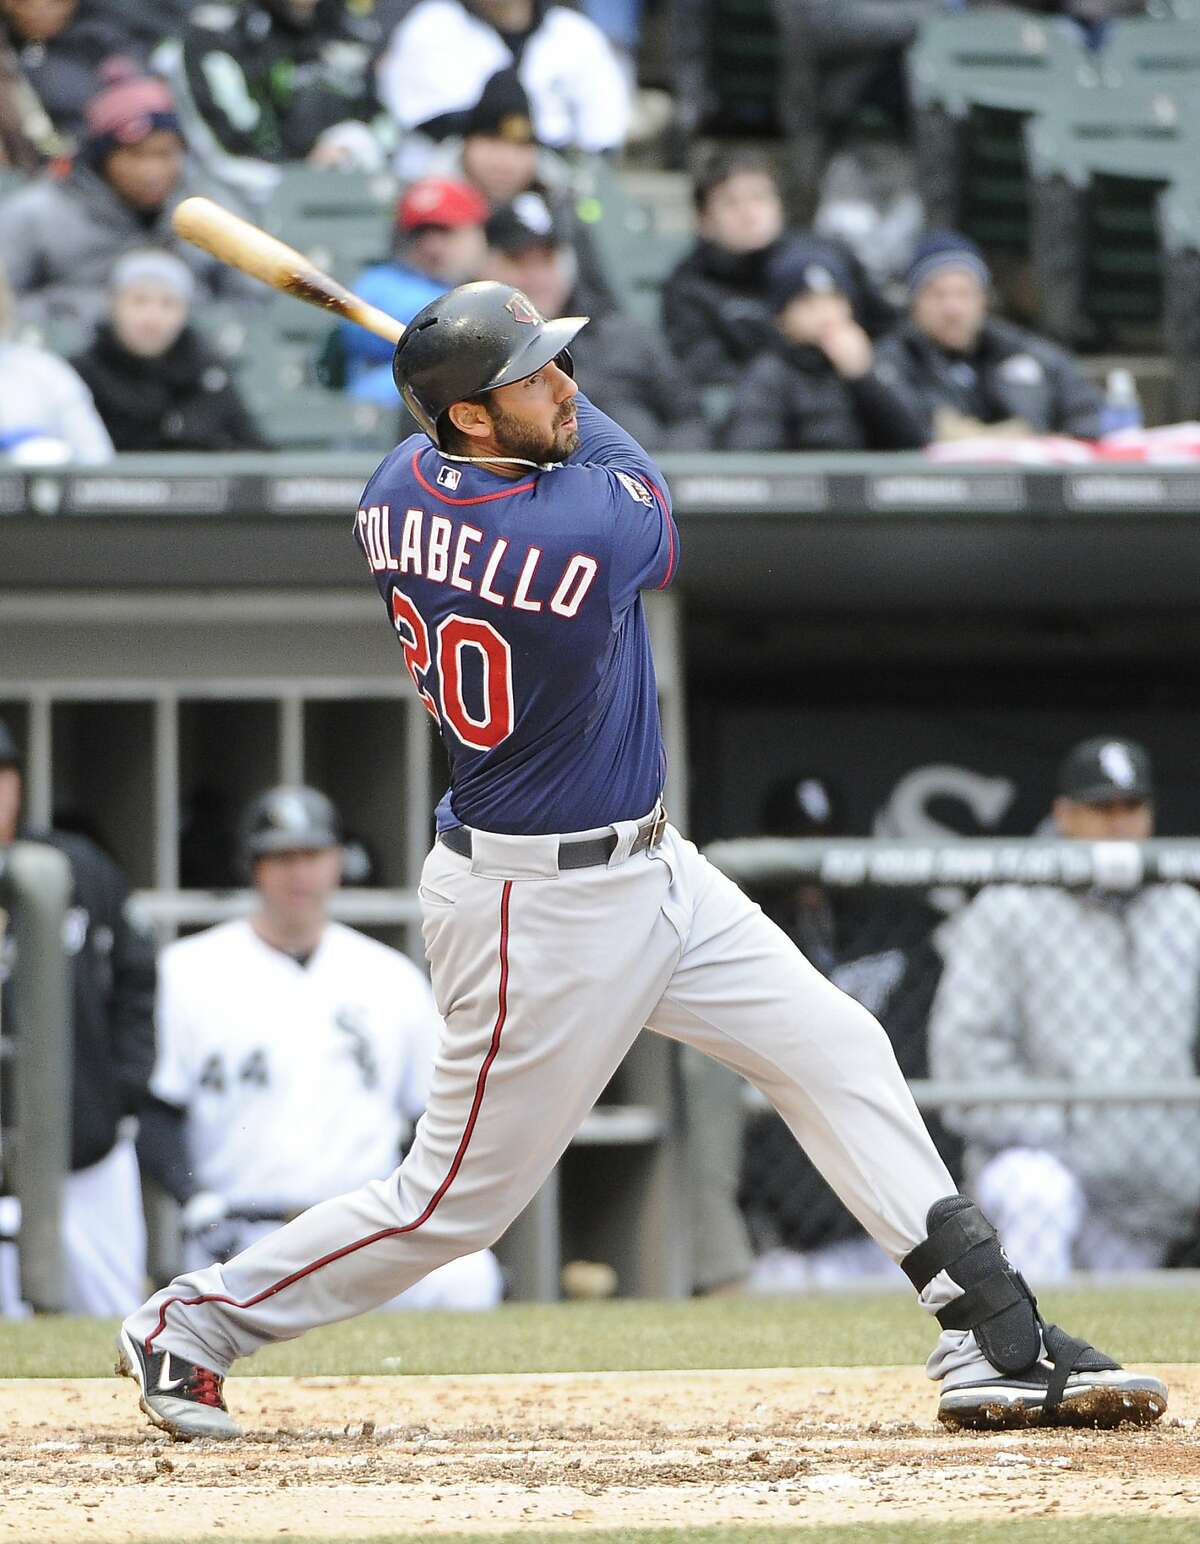 Apr 3, 2014; Chicago, IL, USA; Minnesota Twins first baseman Chris Colabello (20) hits a two-EBI double against the Chicago White Sox during the third inning at U.S Cellular Field. Mandatory Credit: David Banks-USA TODAY Sports